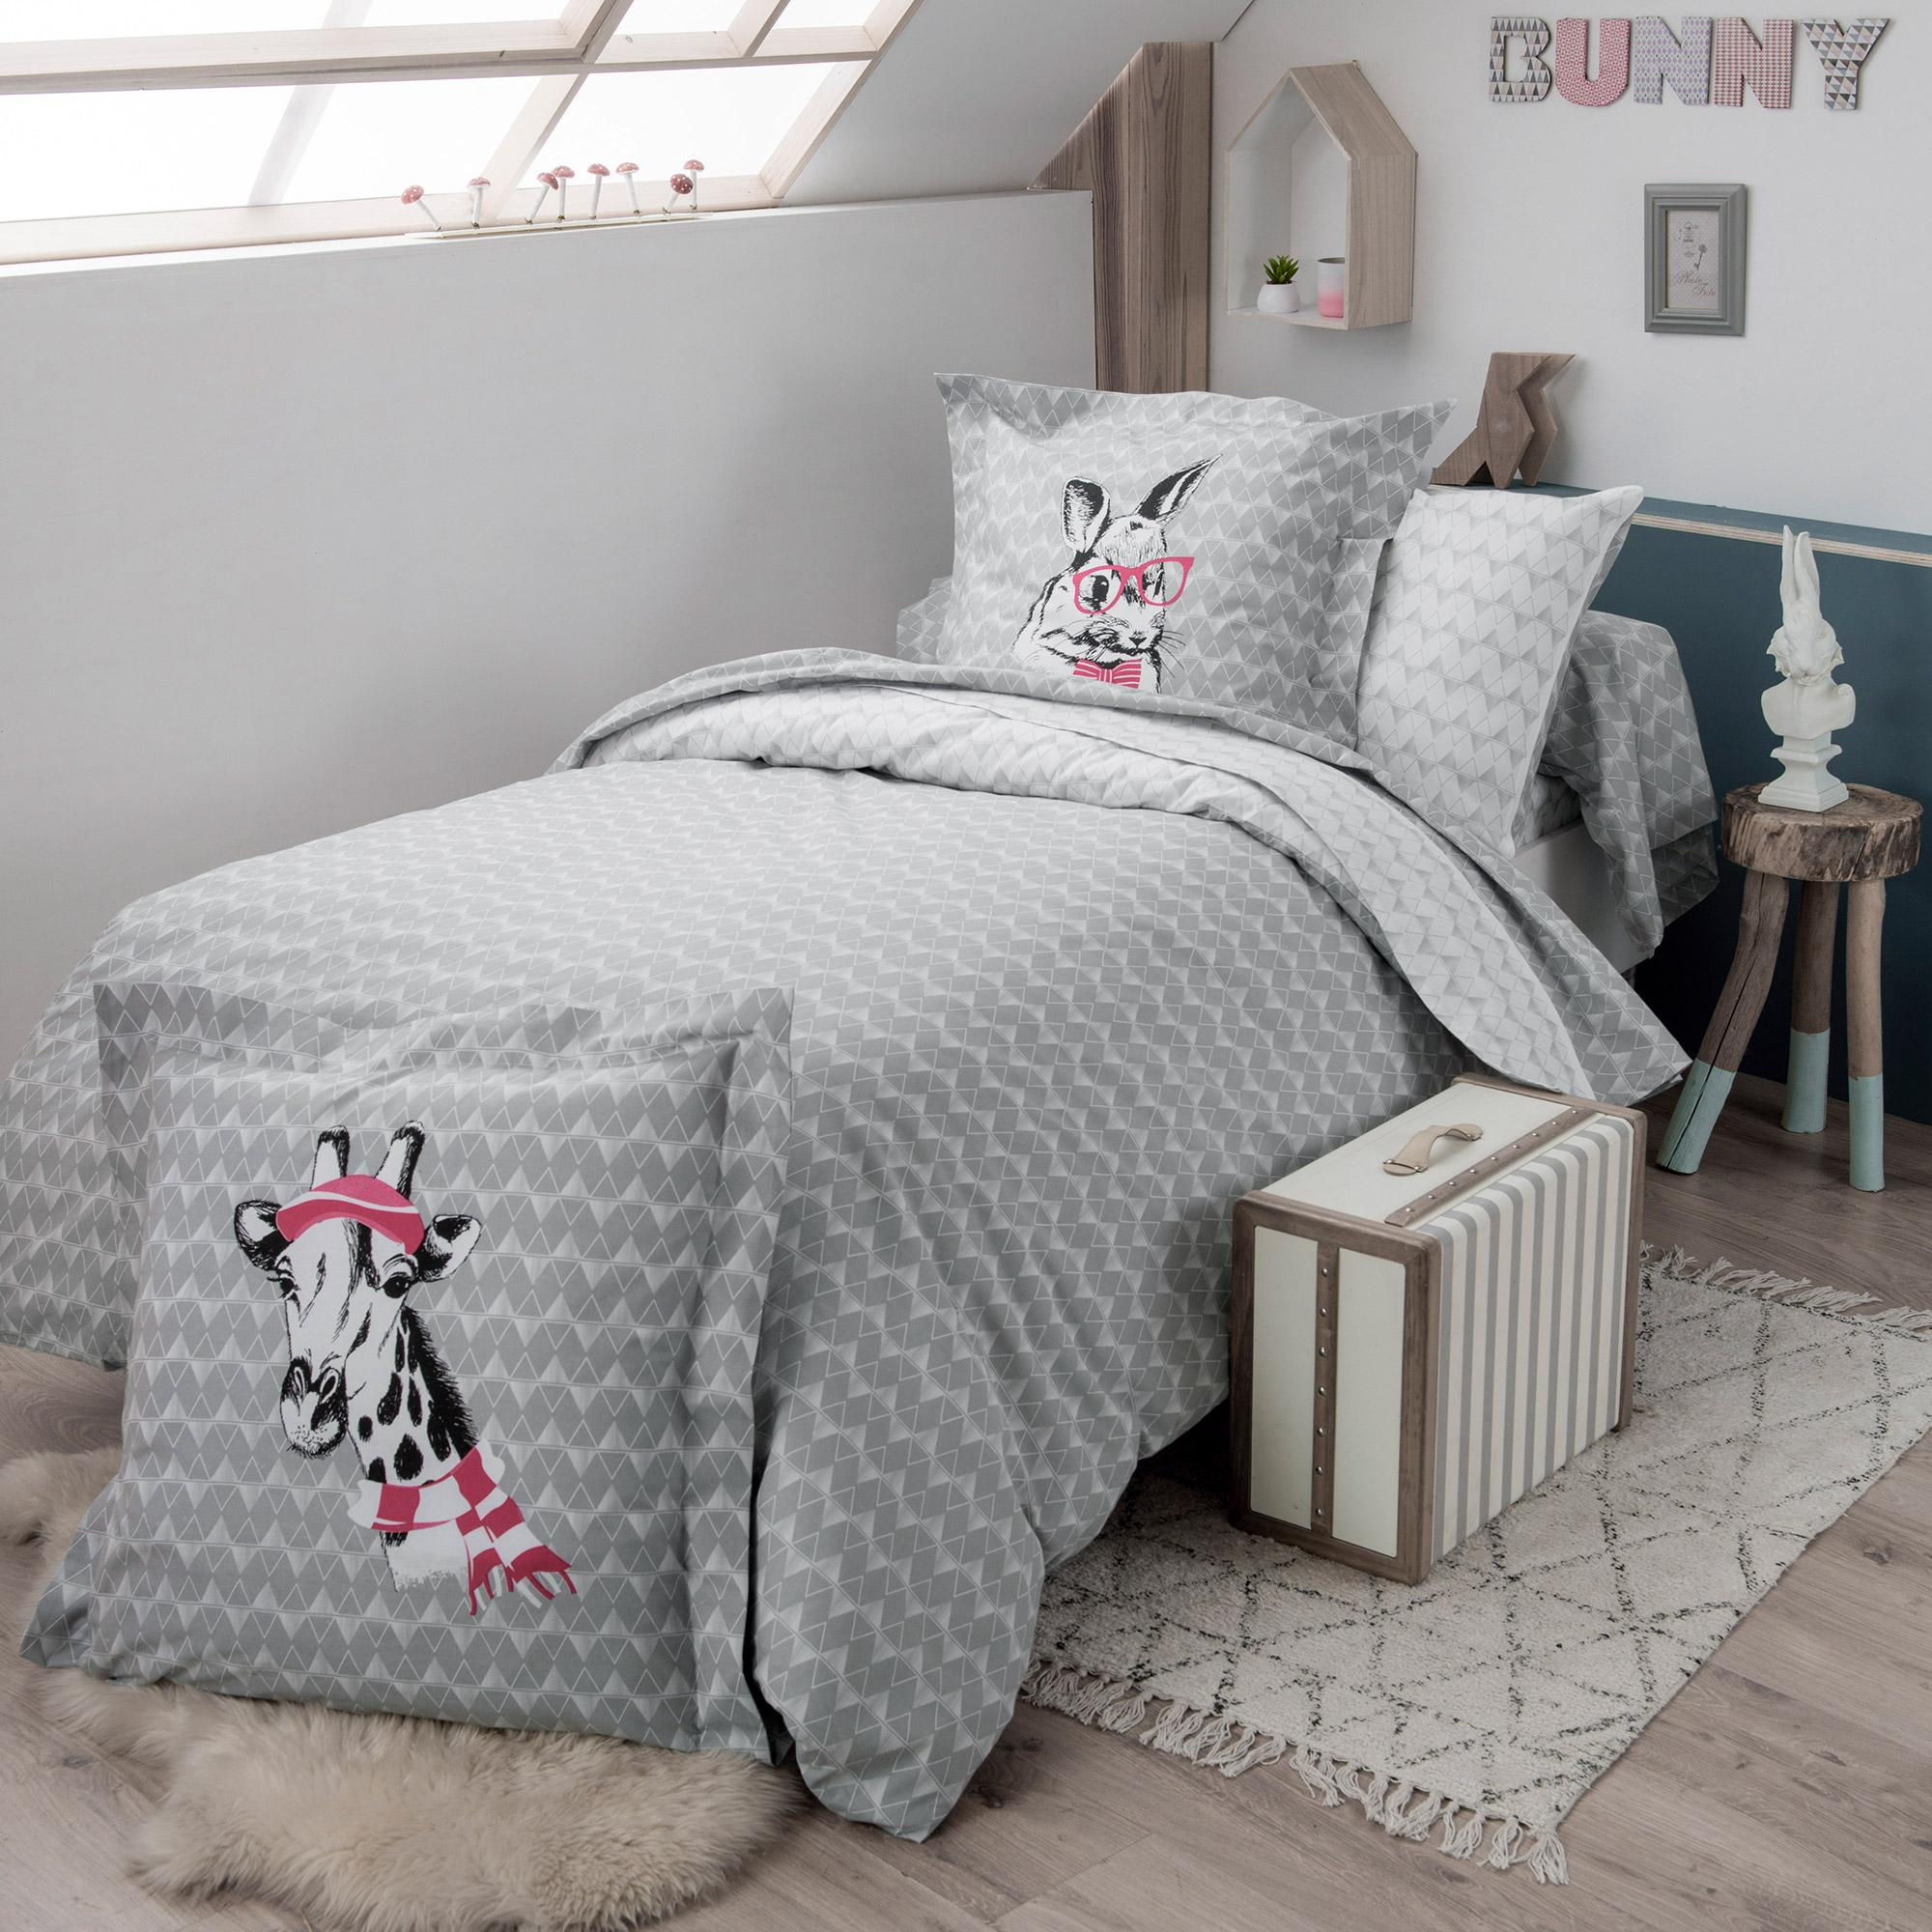 parure de lit 140x200 100 coton bunny 2 pi ces ebay. Black Bedroom Furniture Sets. Home Design Ideas